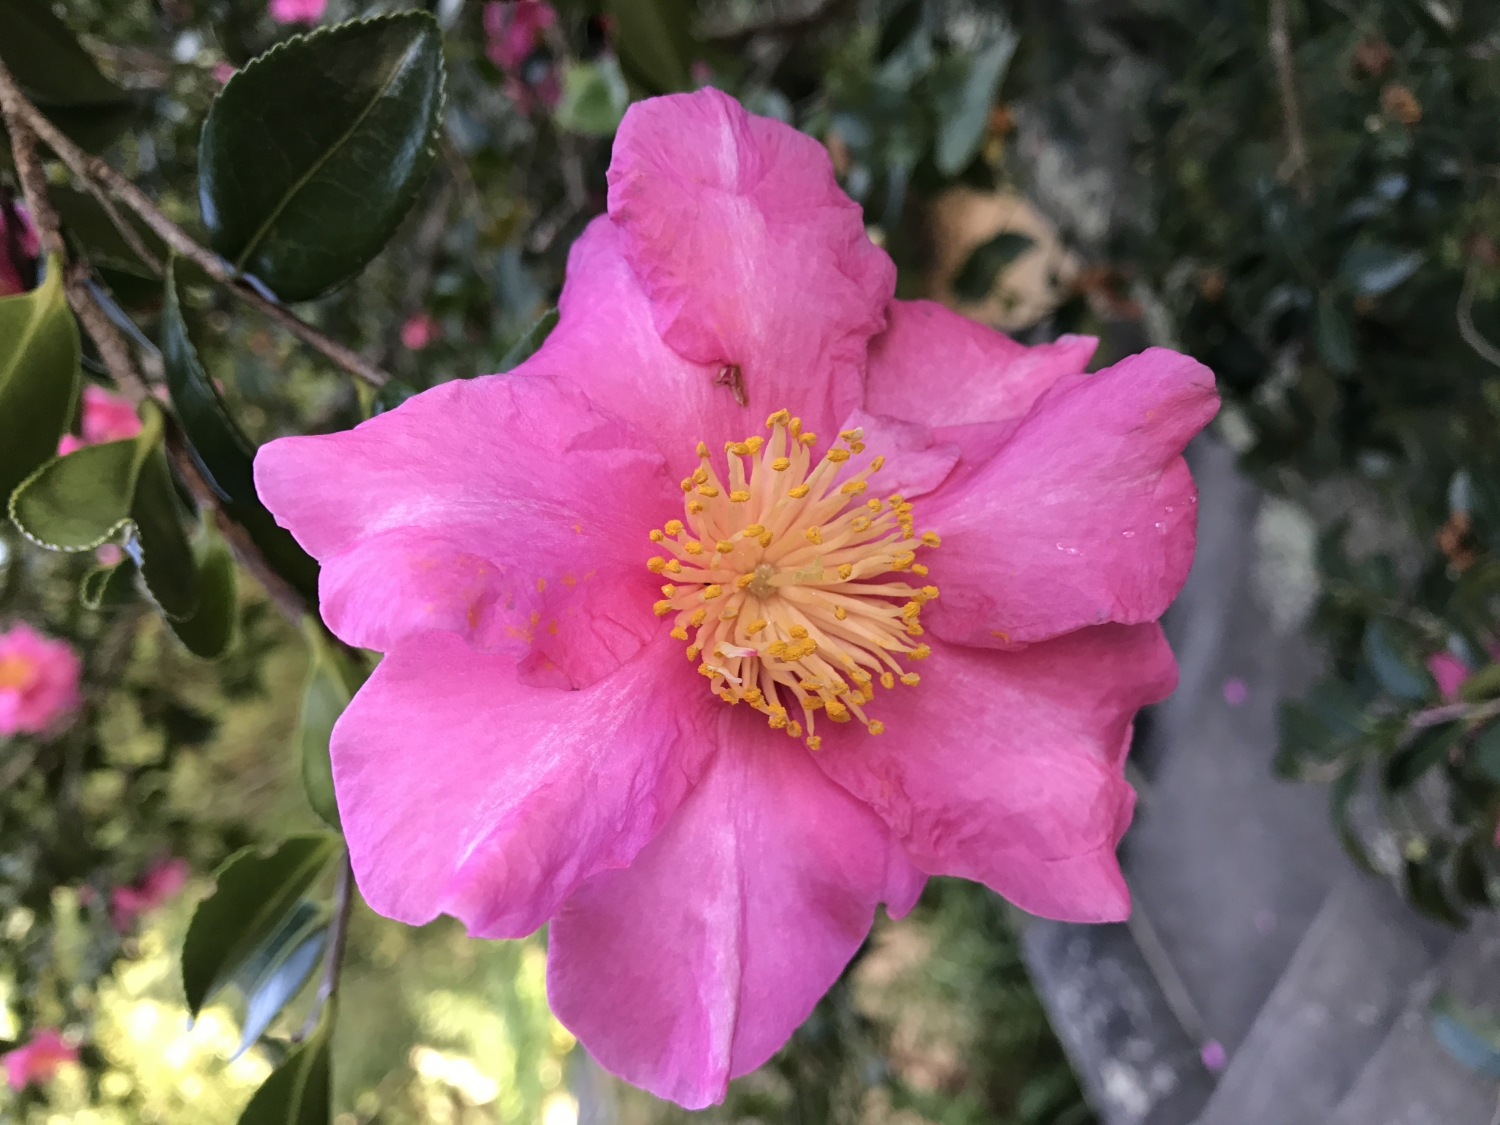 pink single bloom of the Camellia sasanqua from Vaucluse House